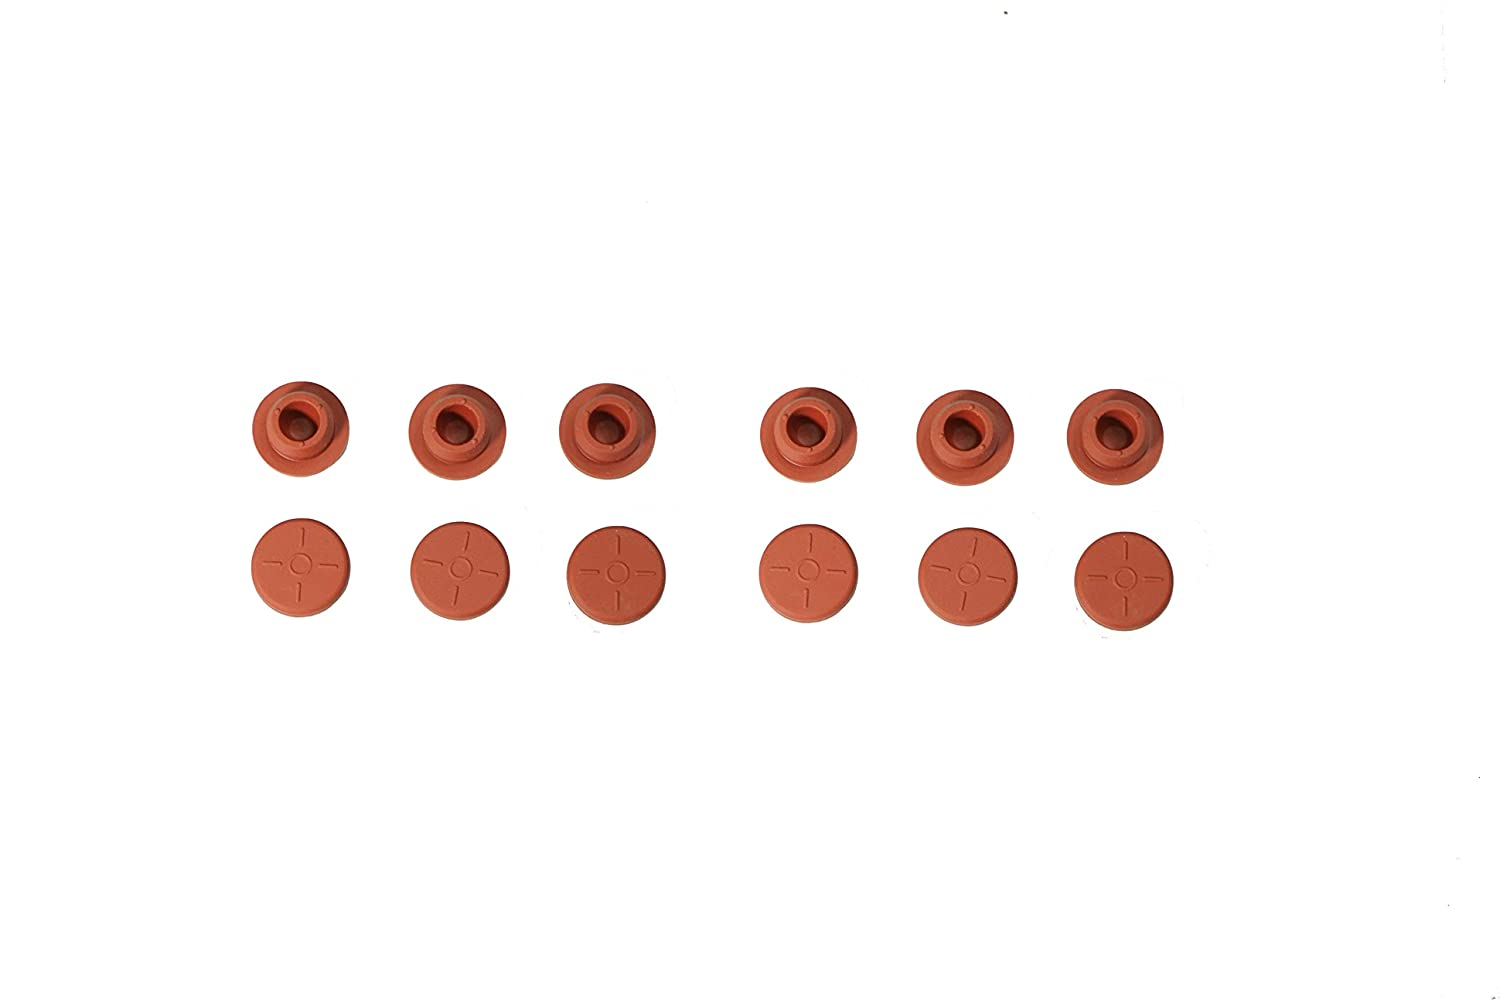 Mm Red 380 Pcs Per Bag,Size For13.1 Plug X19 Seal Flange DR-COMPONENT Self Healing Injection with 1 Ports Bottle Sealing Stopper Plug Nature Rubber